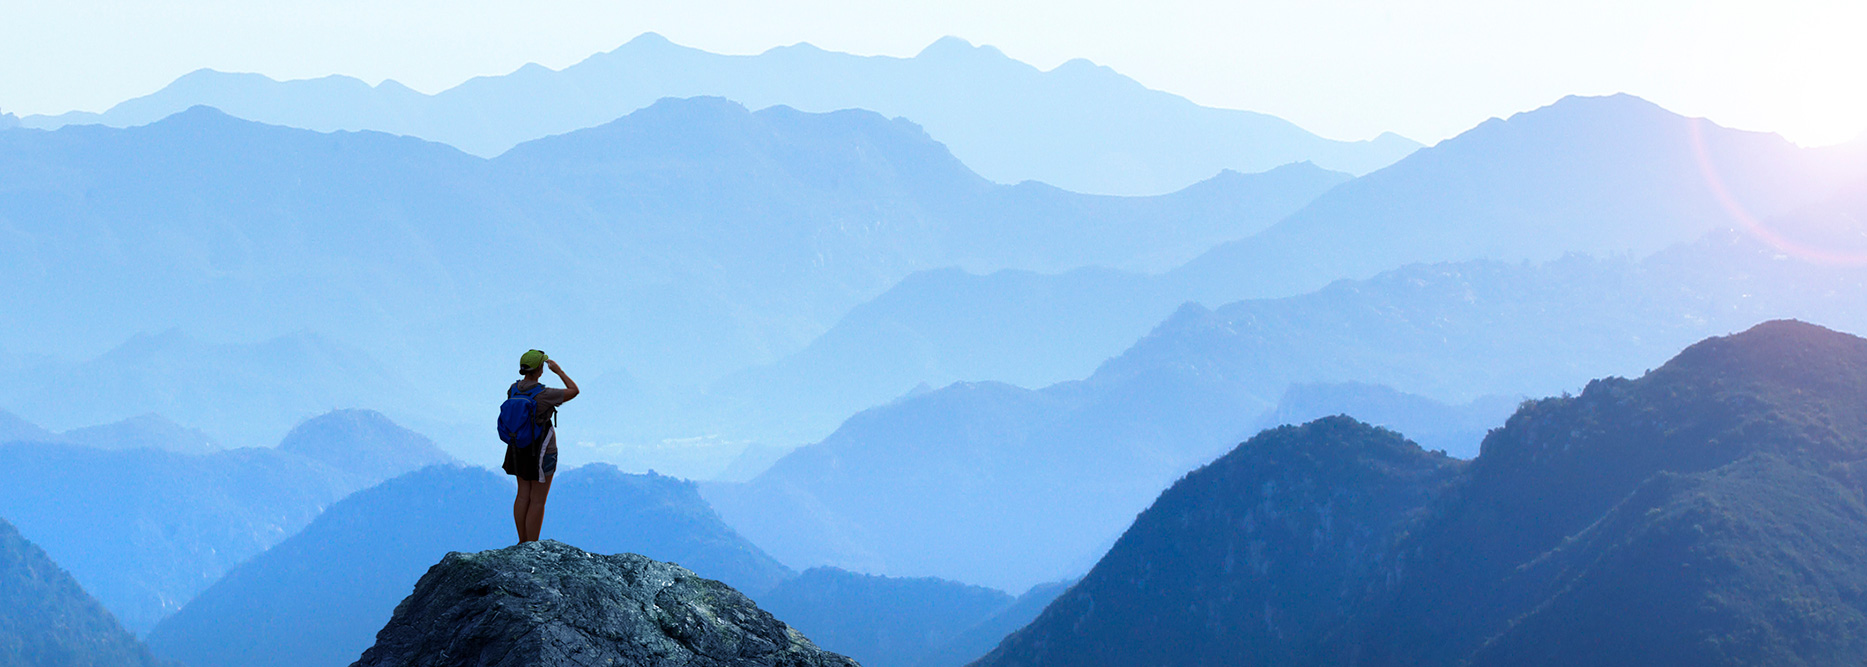 Person standing on a hill looking across a mountain range